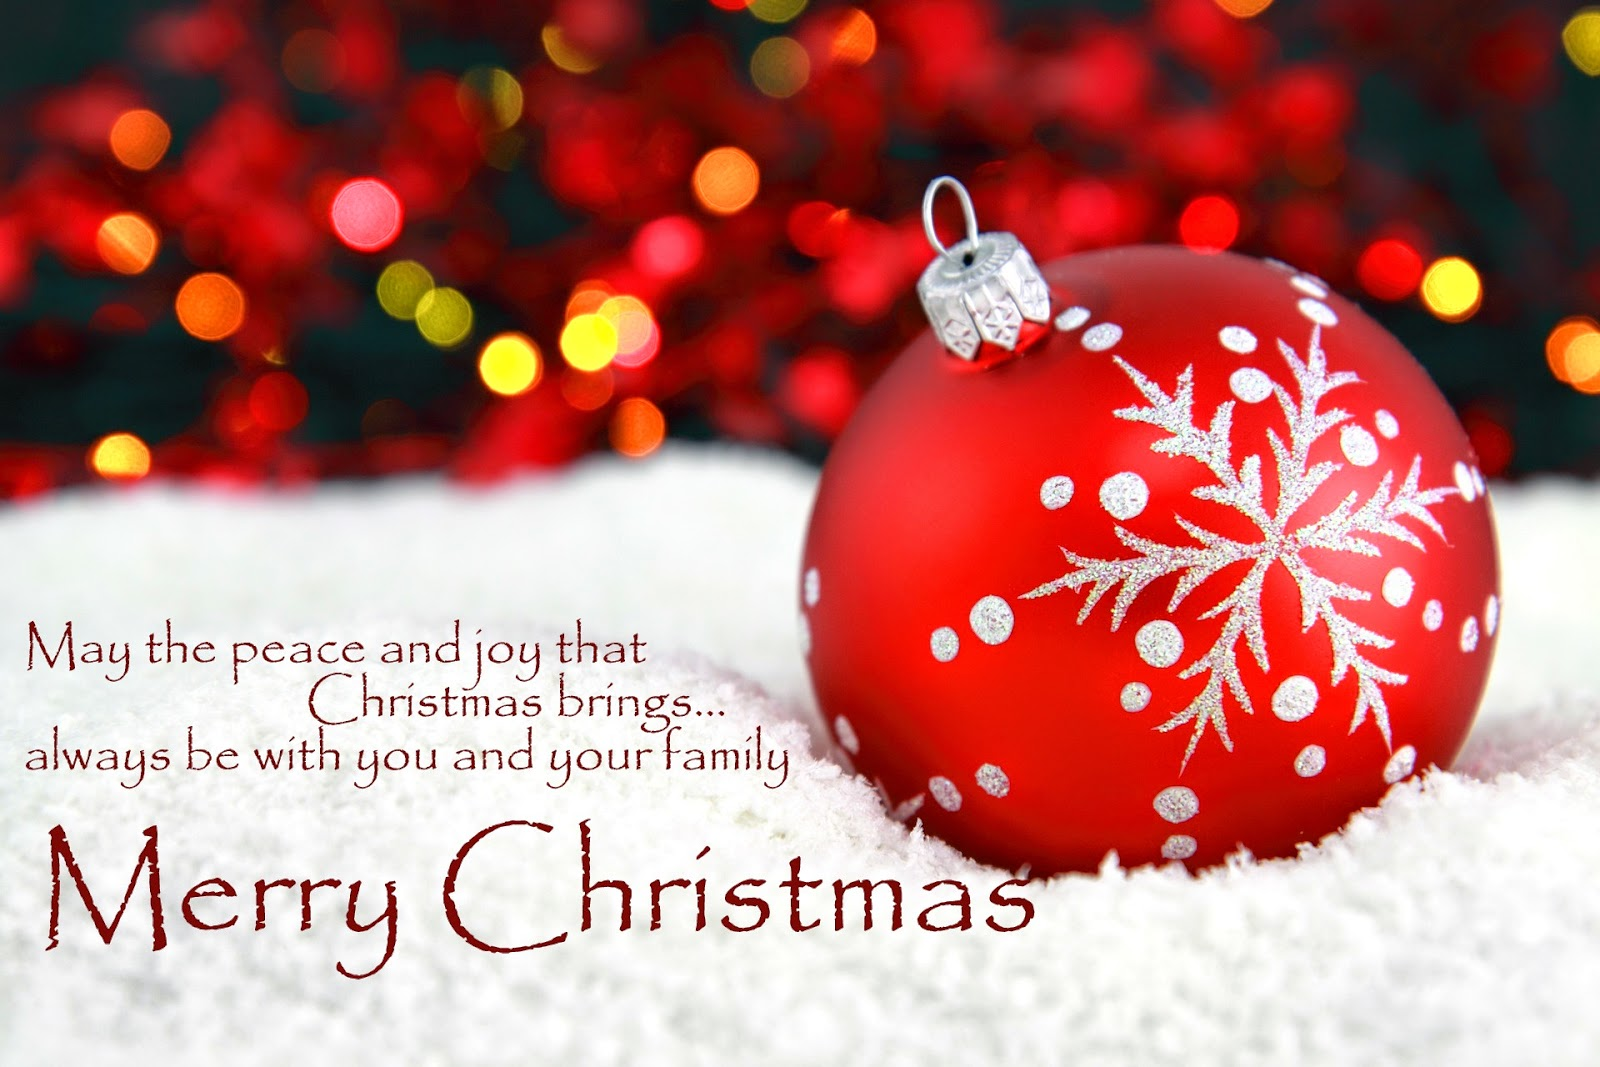 Best Merry Christmas Wishes text For Facebook 2017